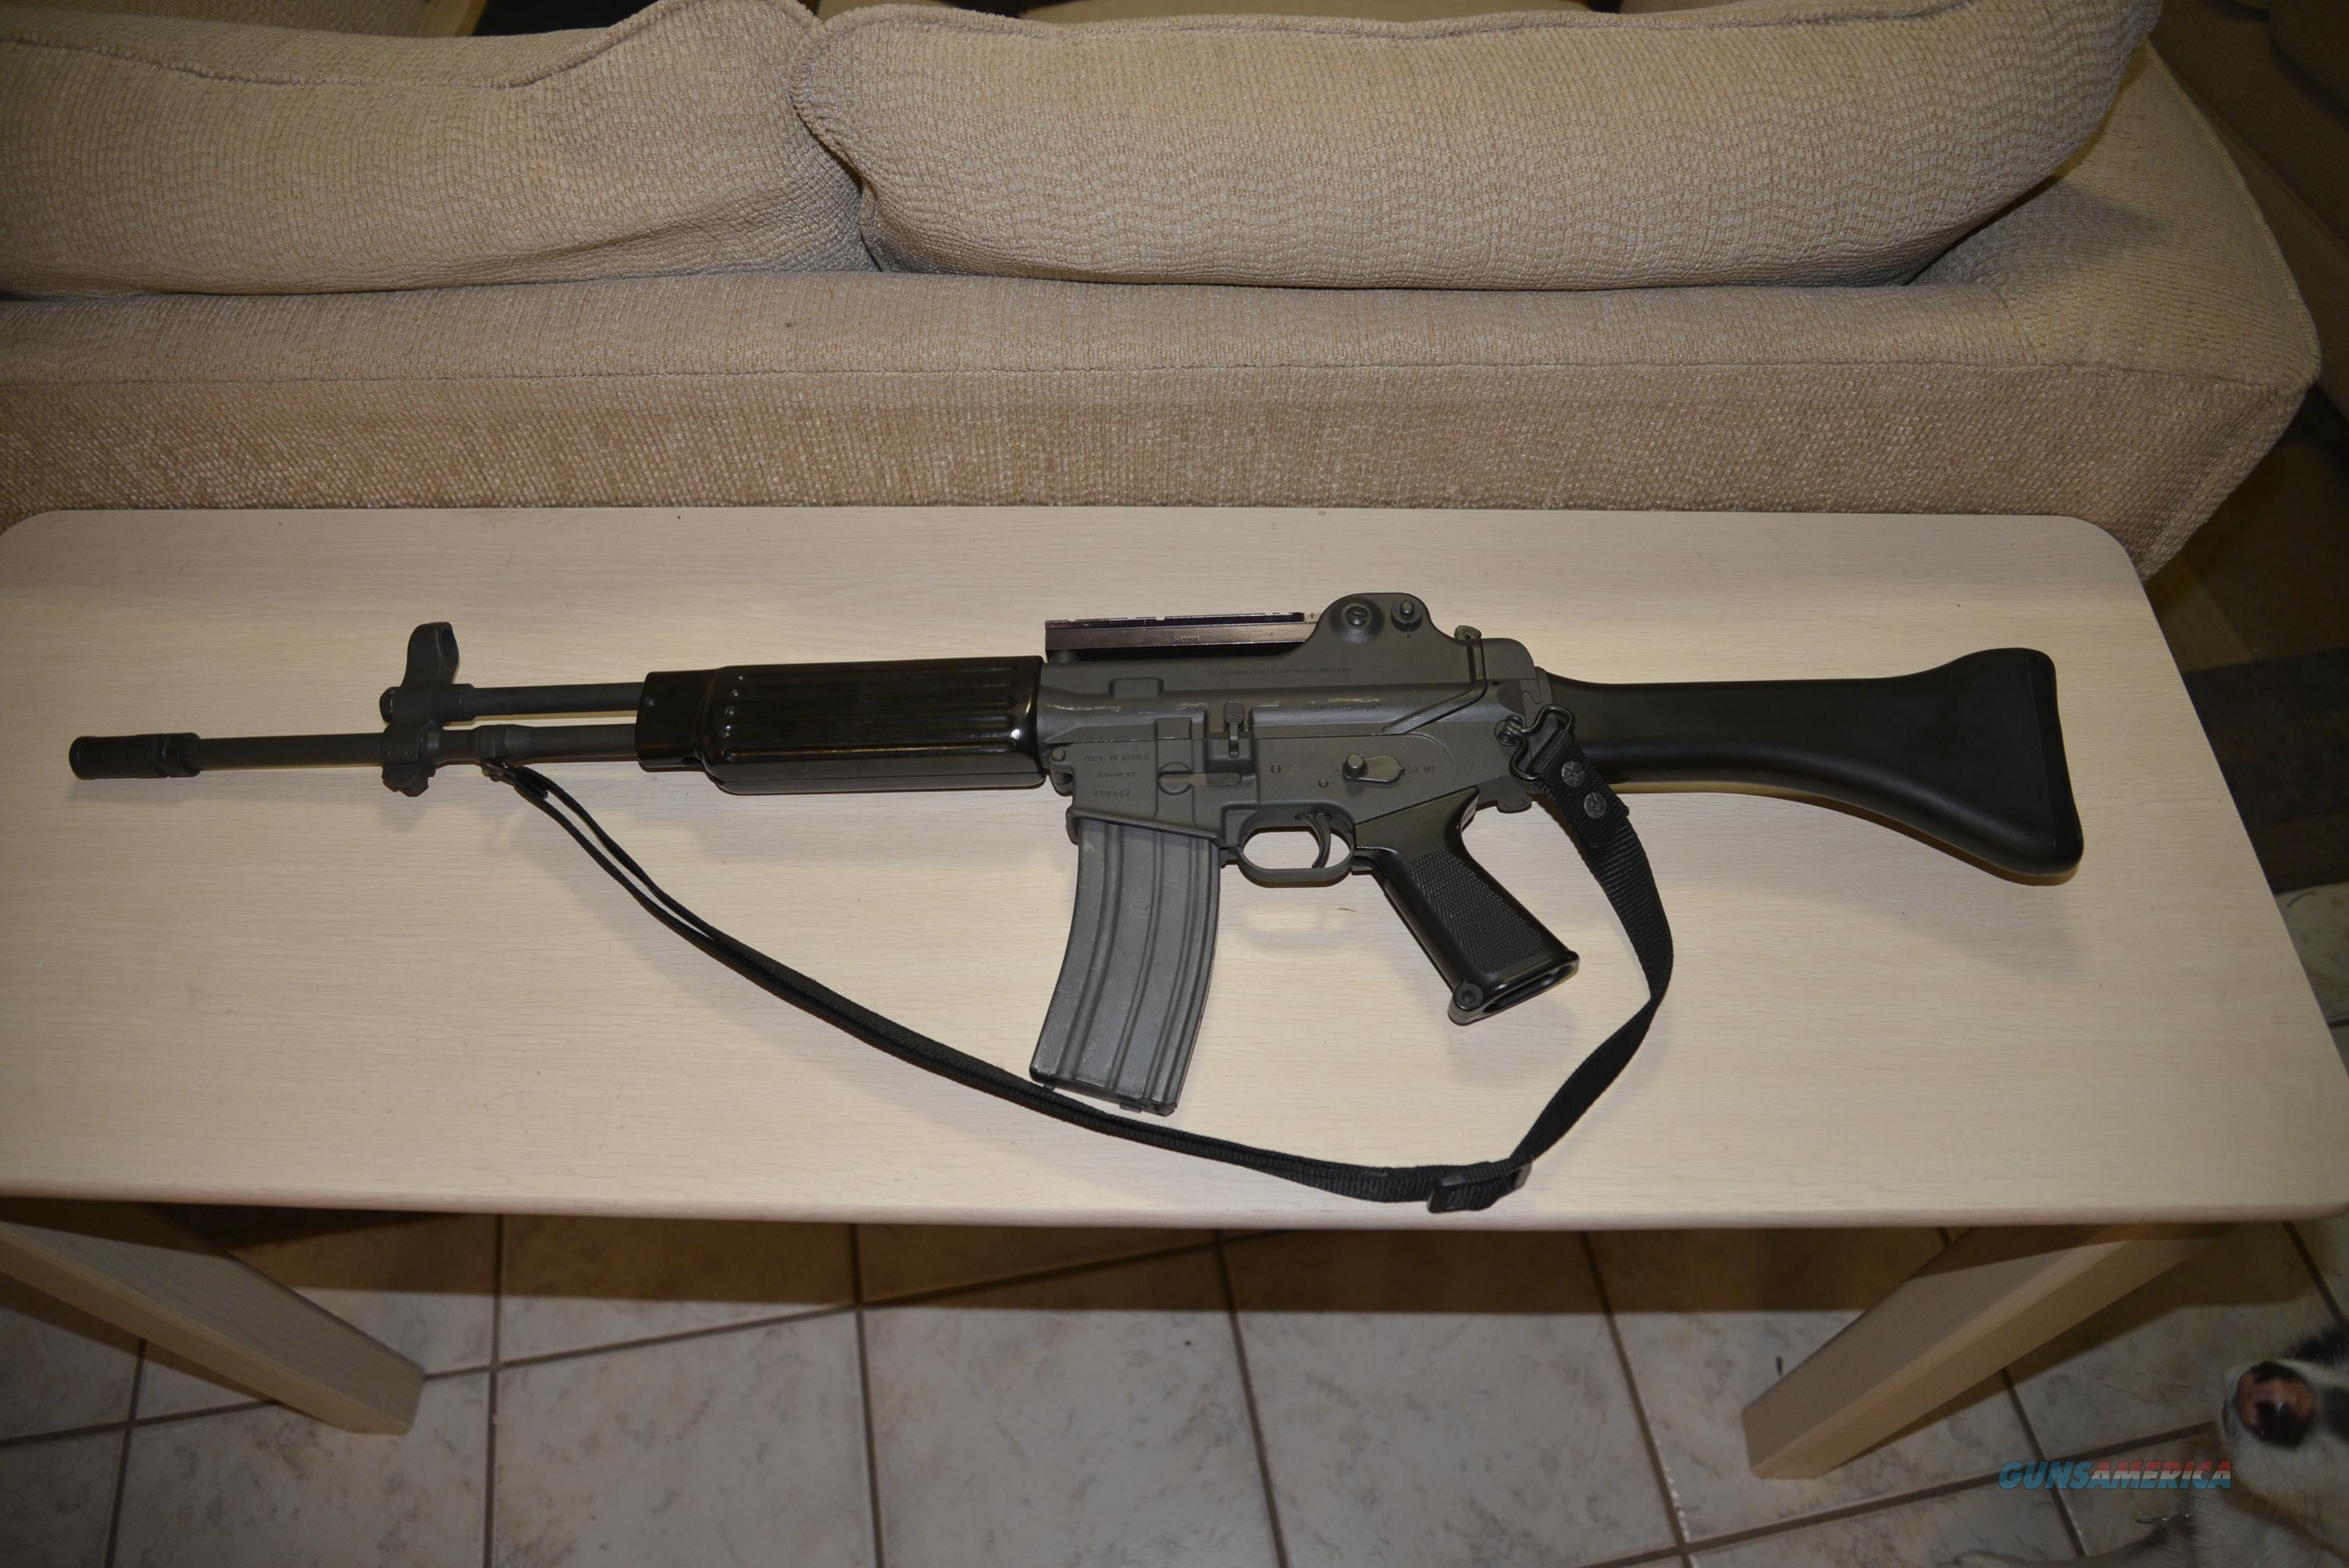 Daewoo K2 semi-auto rifle, Reduced to sell for sale